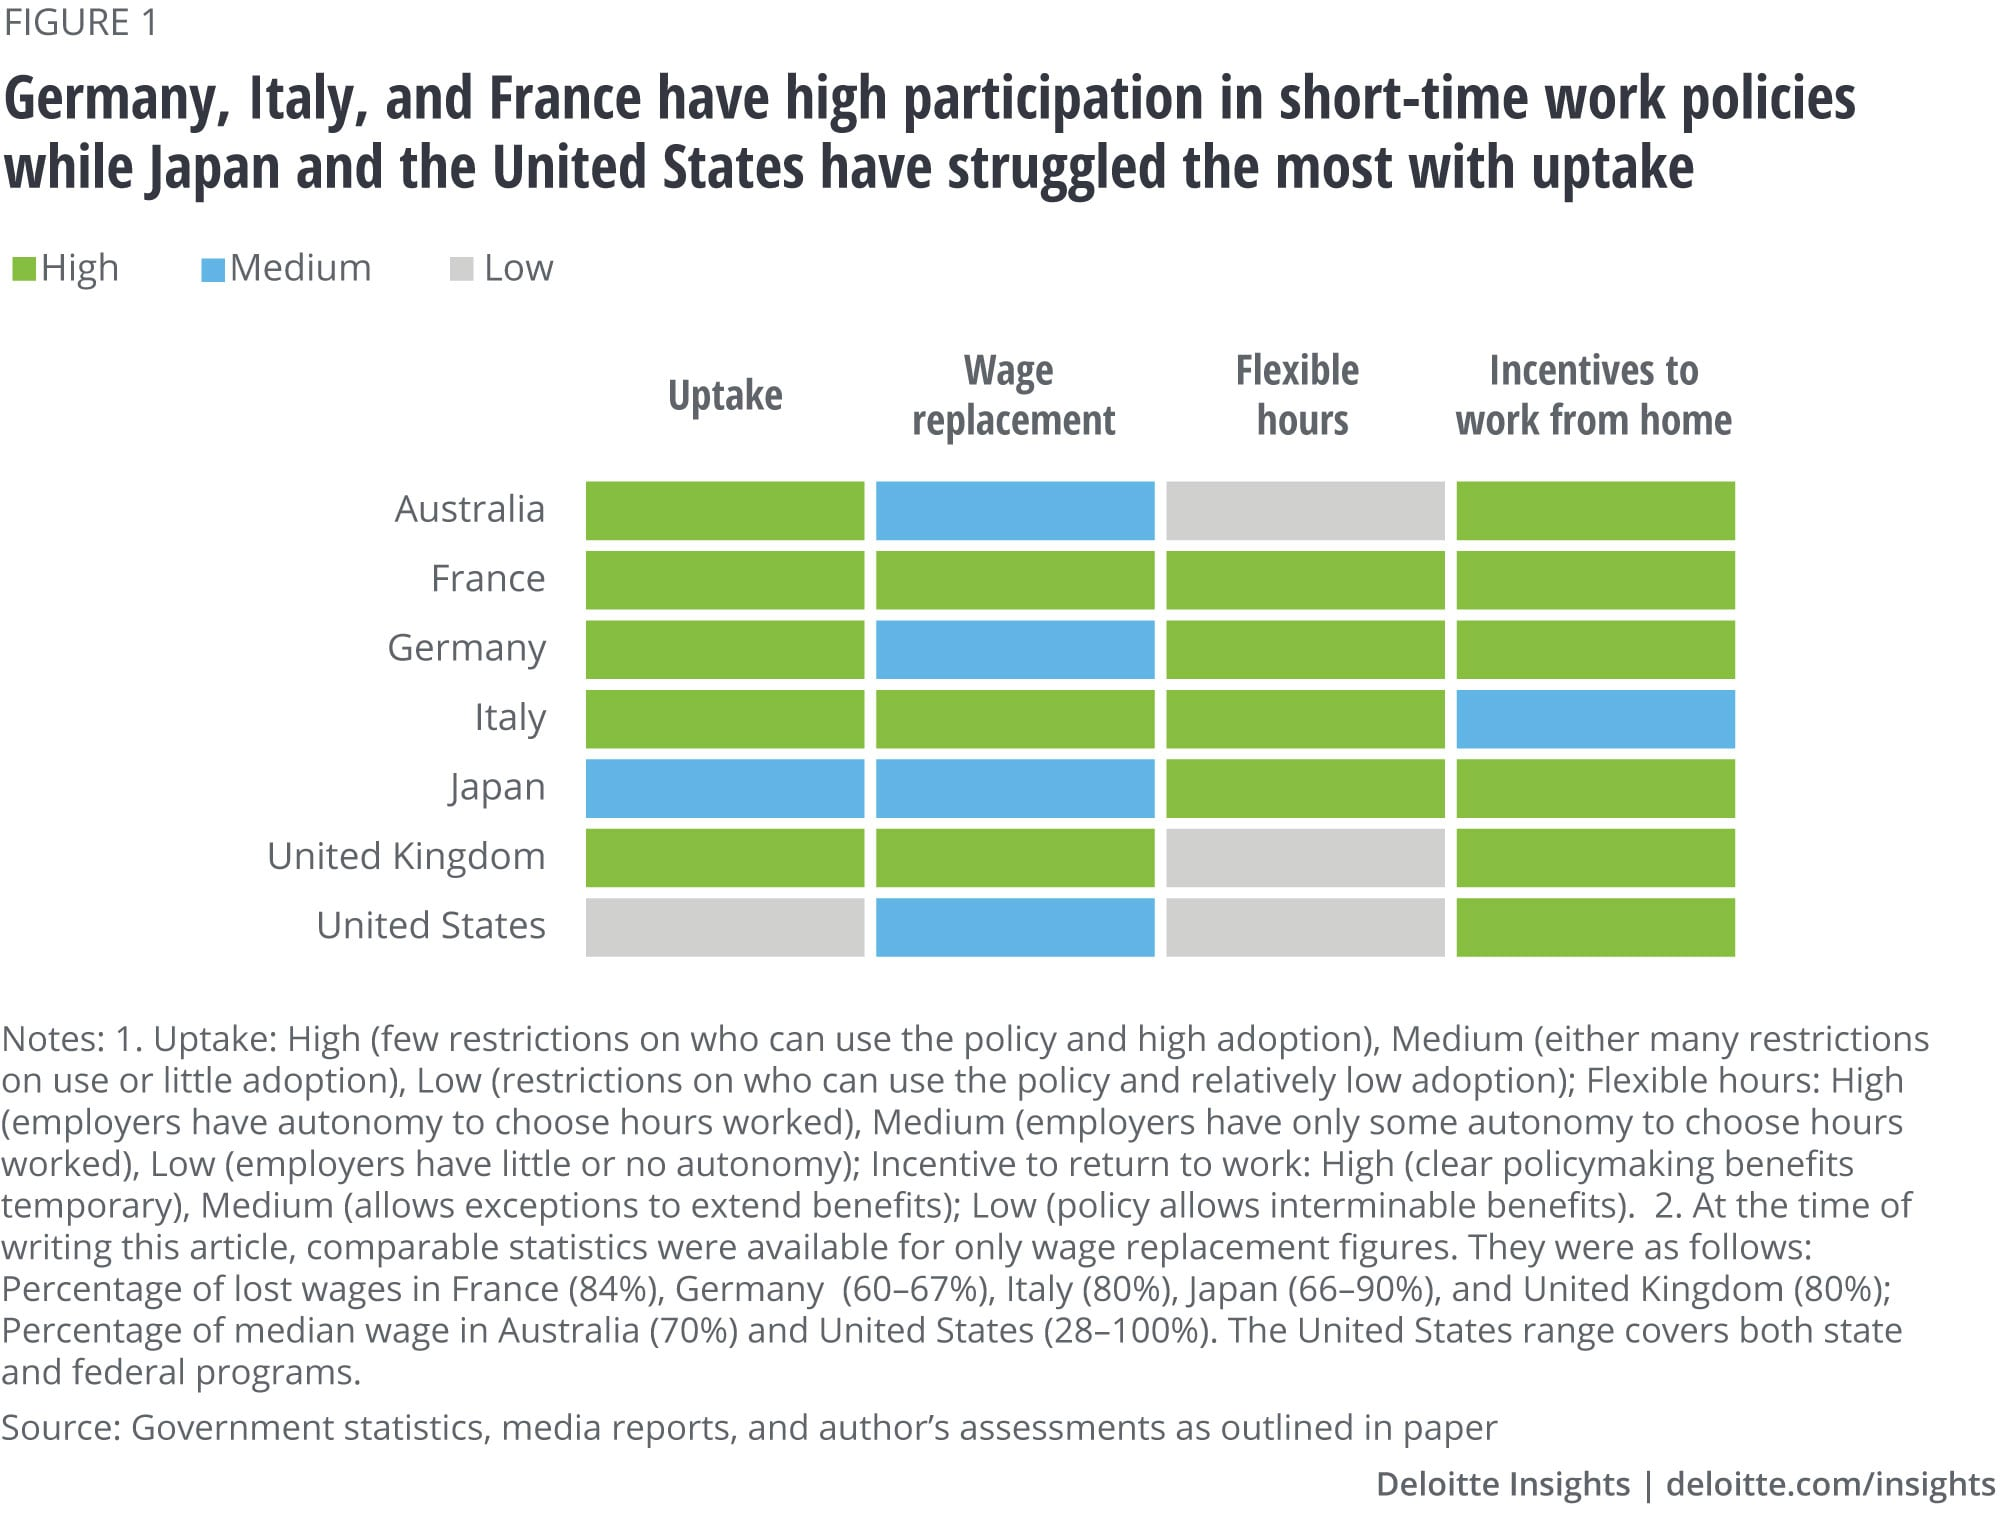 Germany, Italy, and France have high participation in short-time work policies while Japan and the United States have struggled the most with uptake